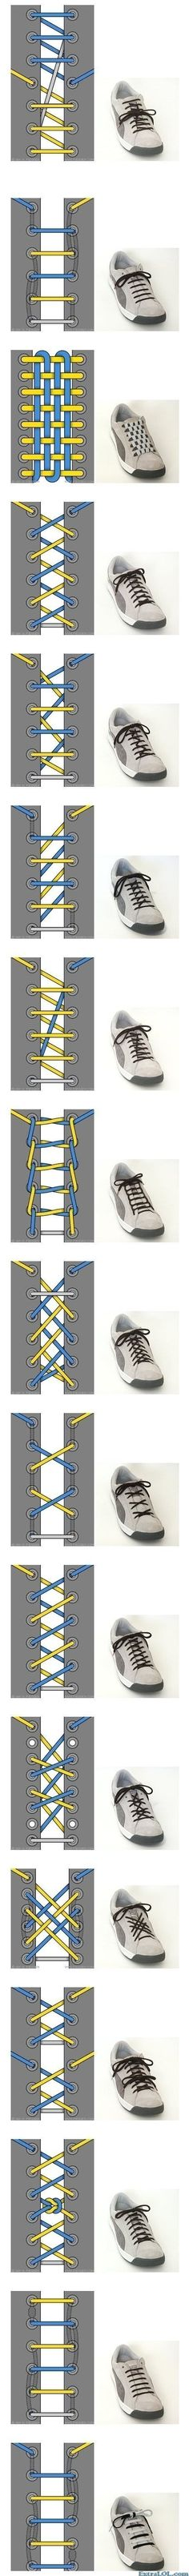 17 ways to tie shoe laces      (http://www.extralol.com/?pic=34060c1be80de1c703016dc0995c4163)